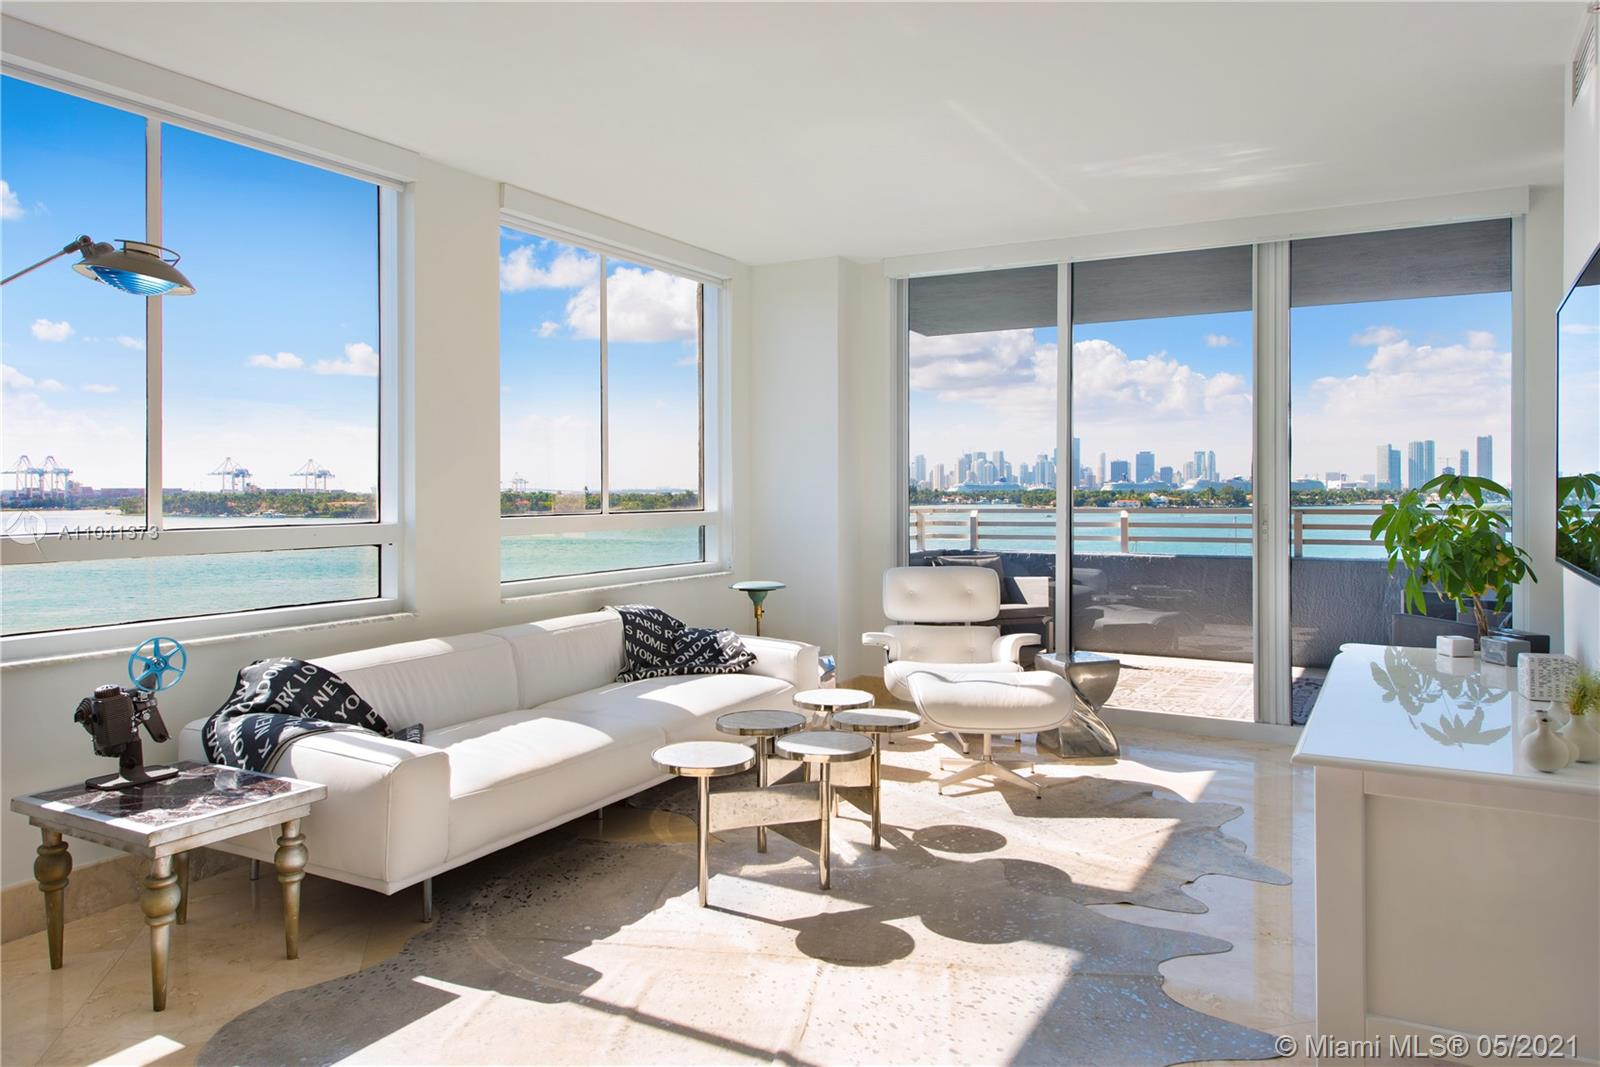 Delightful condo in great location! Wonderful direct West Biscayne Bay, sunset and downtown views. Large remodeled 2-bed in the Waverly's most-desired floor plan. No detail has been spared in this gorgeous renovation. Private, large main bed and bath, with room for sitting area or office. Full size washer and drier in the unit. Entertain in your spacious living/dining are and gourmet kitchen. Oversized terrace has room for table and chairs or lounging sofas. Full service building with amazing amenities. Close to restaurants, shops and Lincoln Road.